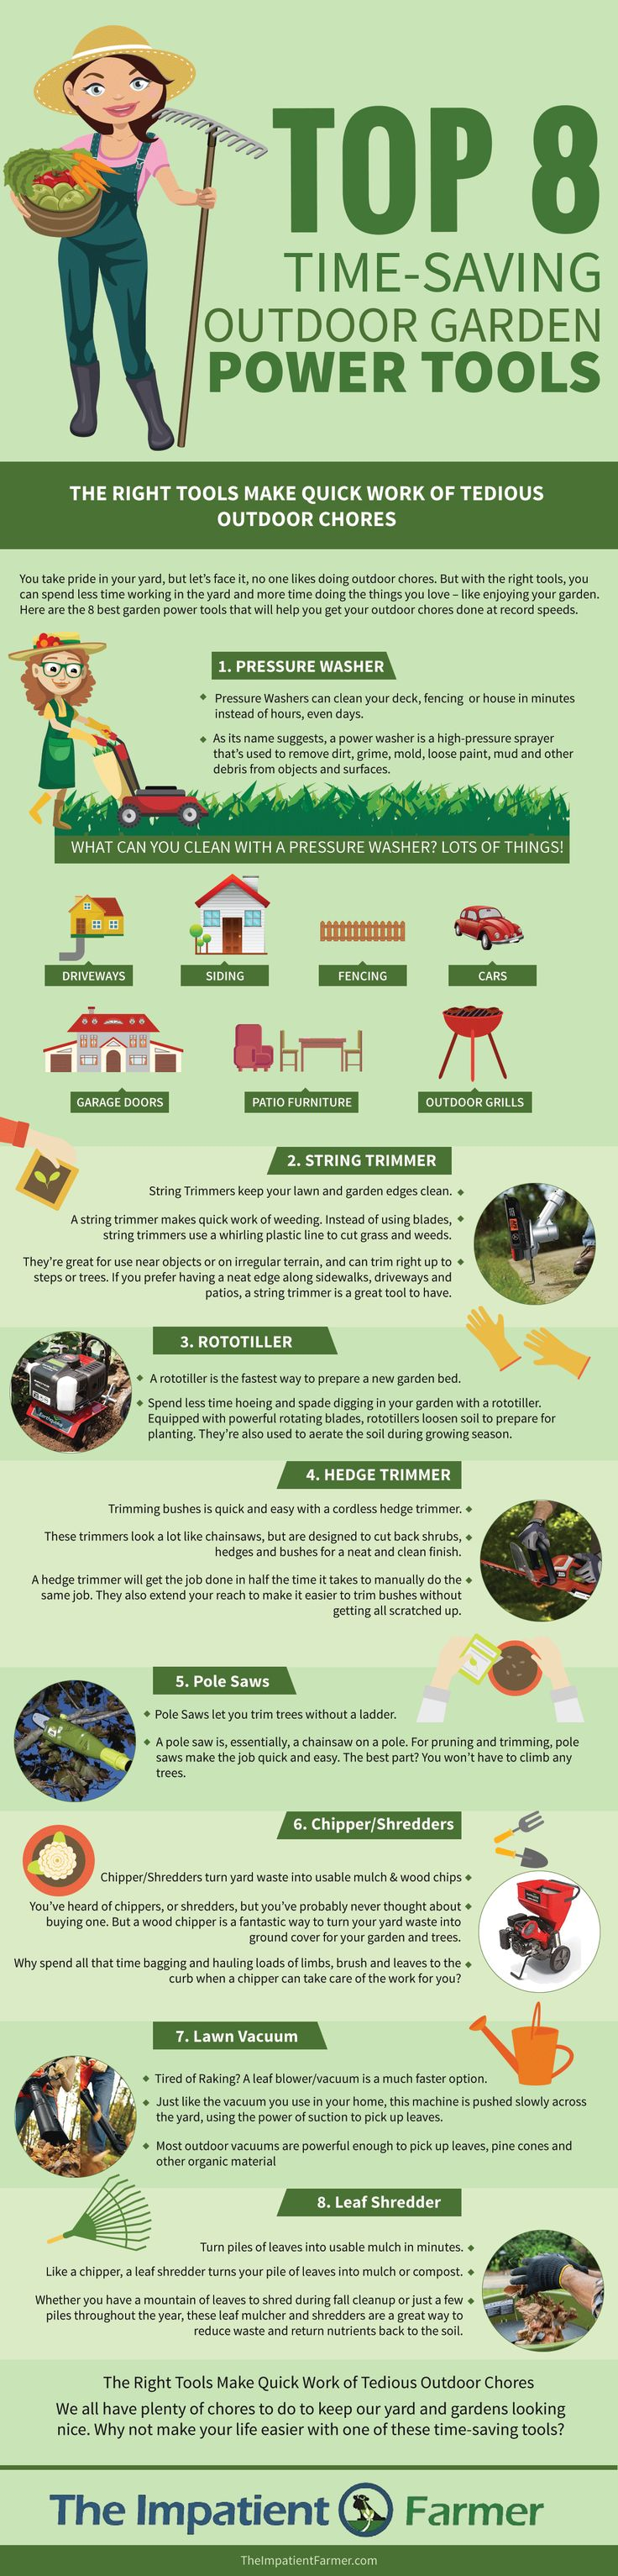 The 8 Best Garden Power Tools that help you save time in the garden. An Infographic by The Impatient Farmer.